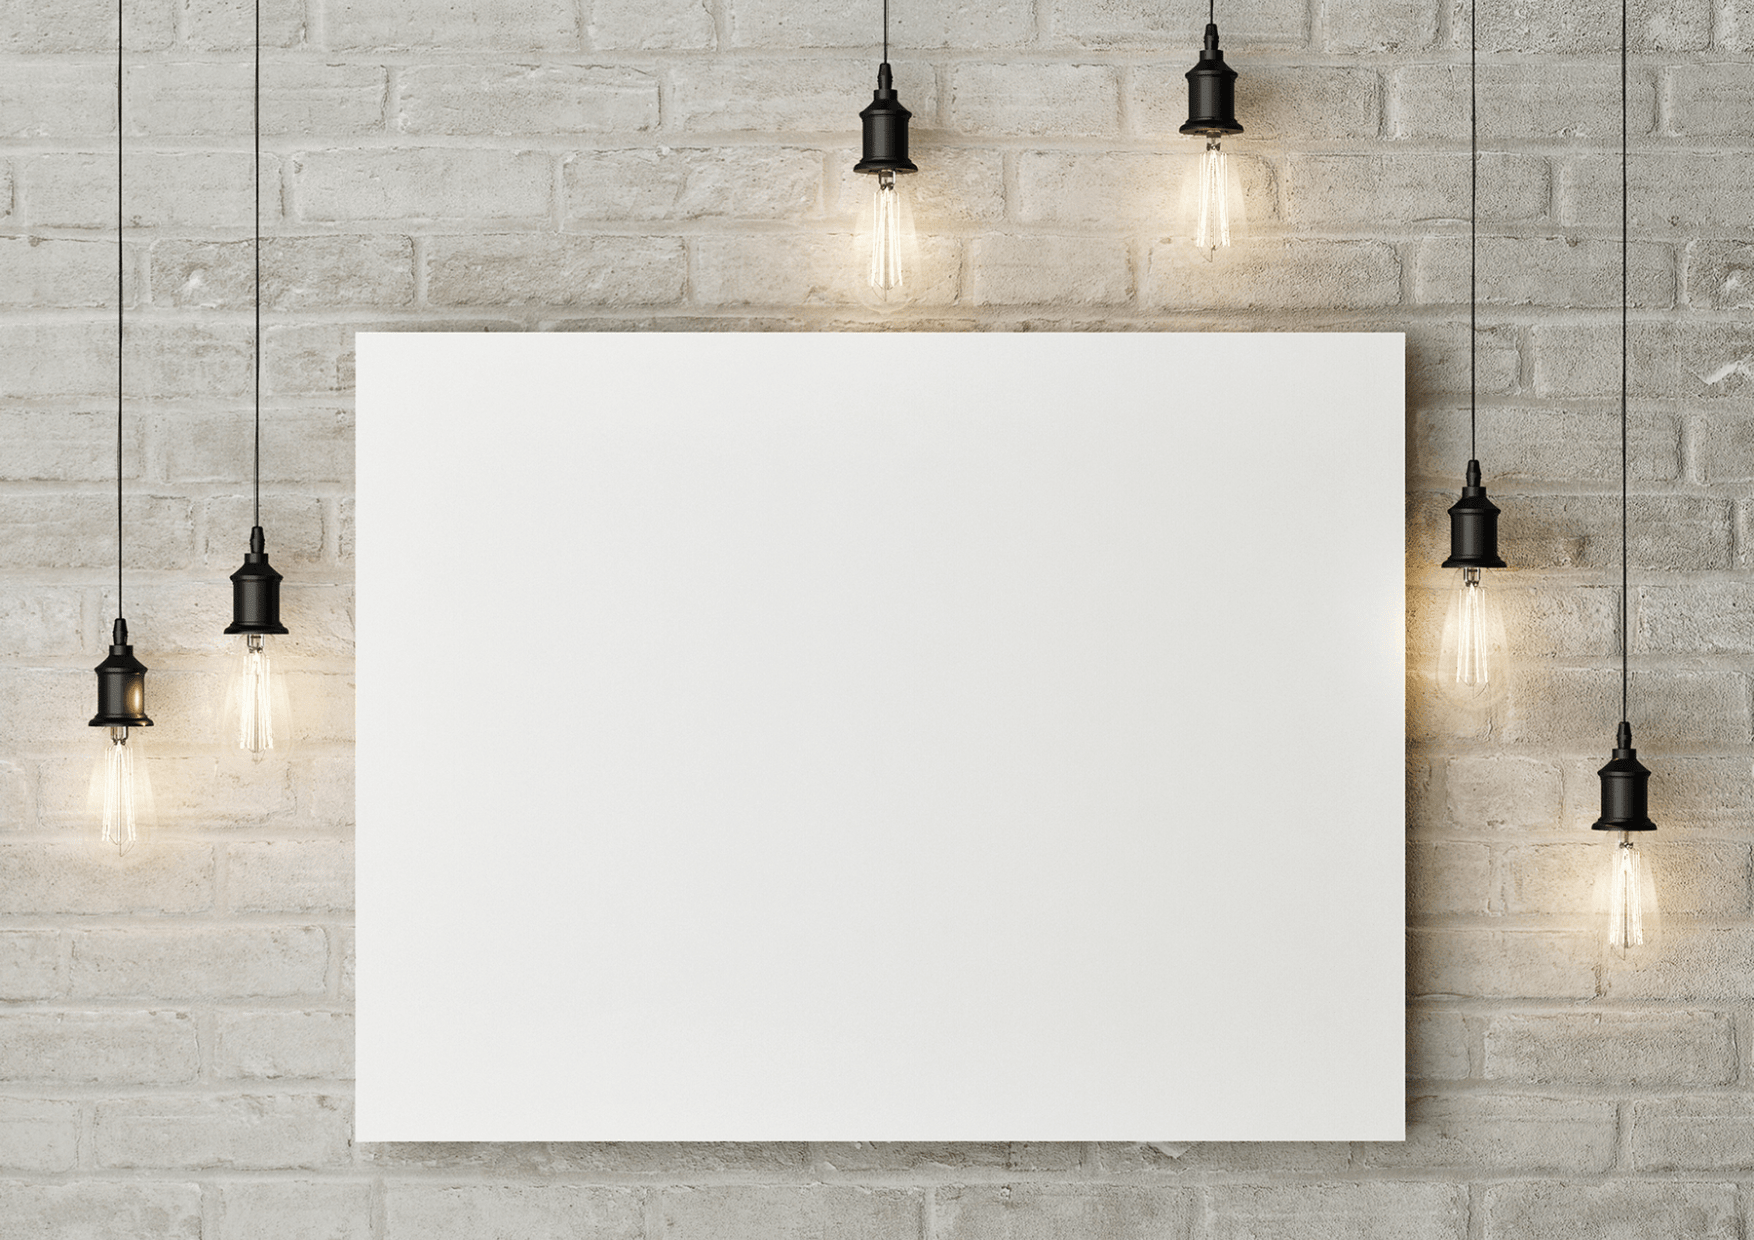 Mockup,                Inspiration,                Life,                Photo,                Image,                Frame,                White,                 Free Image